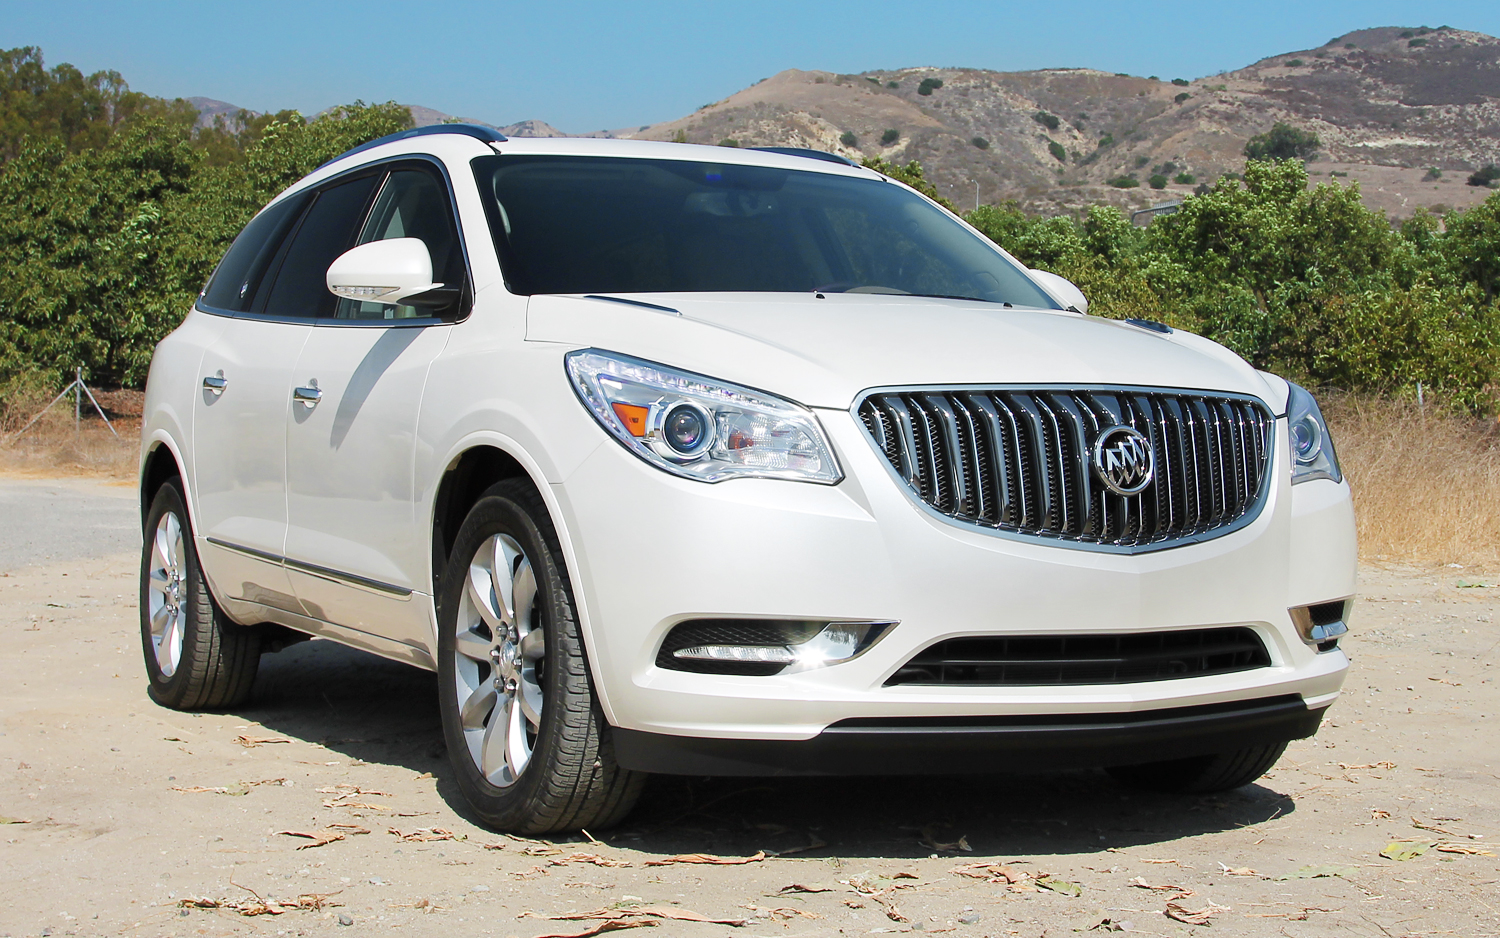 enclave pictures information com specs models and auto buick database